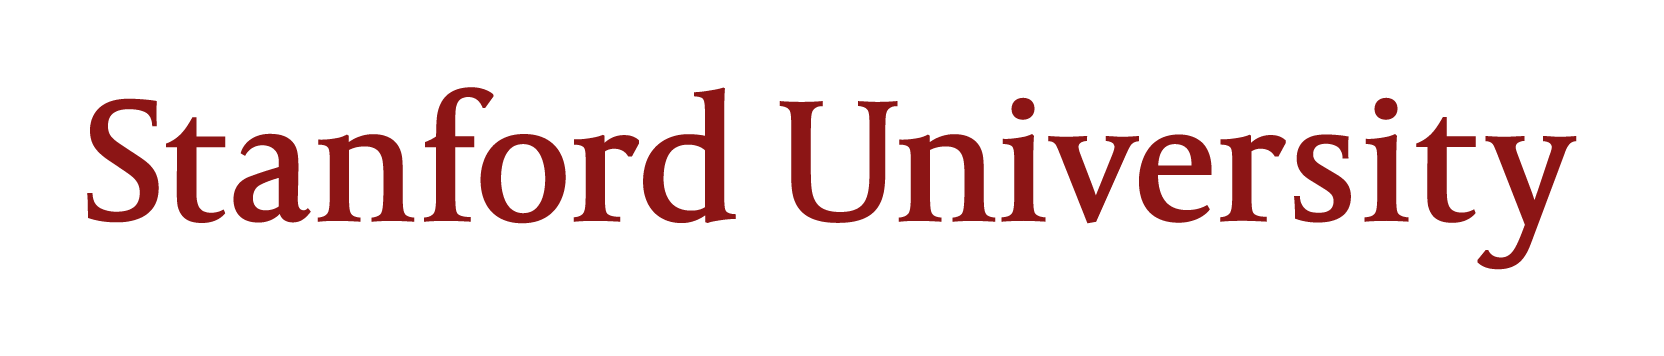 University PlusPng.com  - Stanford University Logo PNG